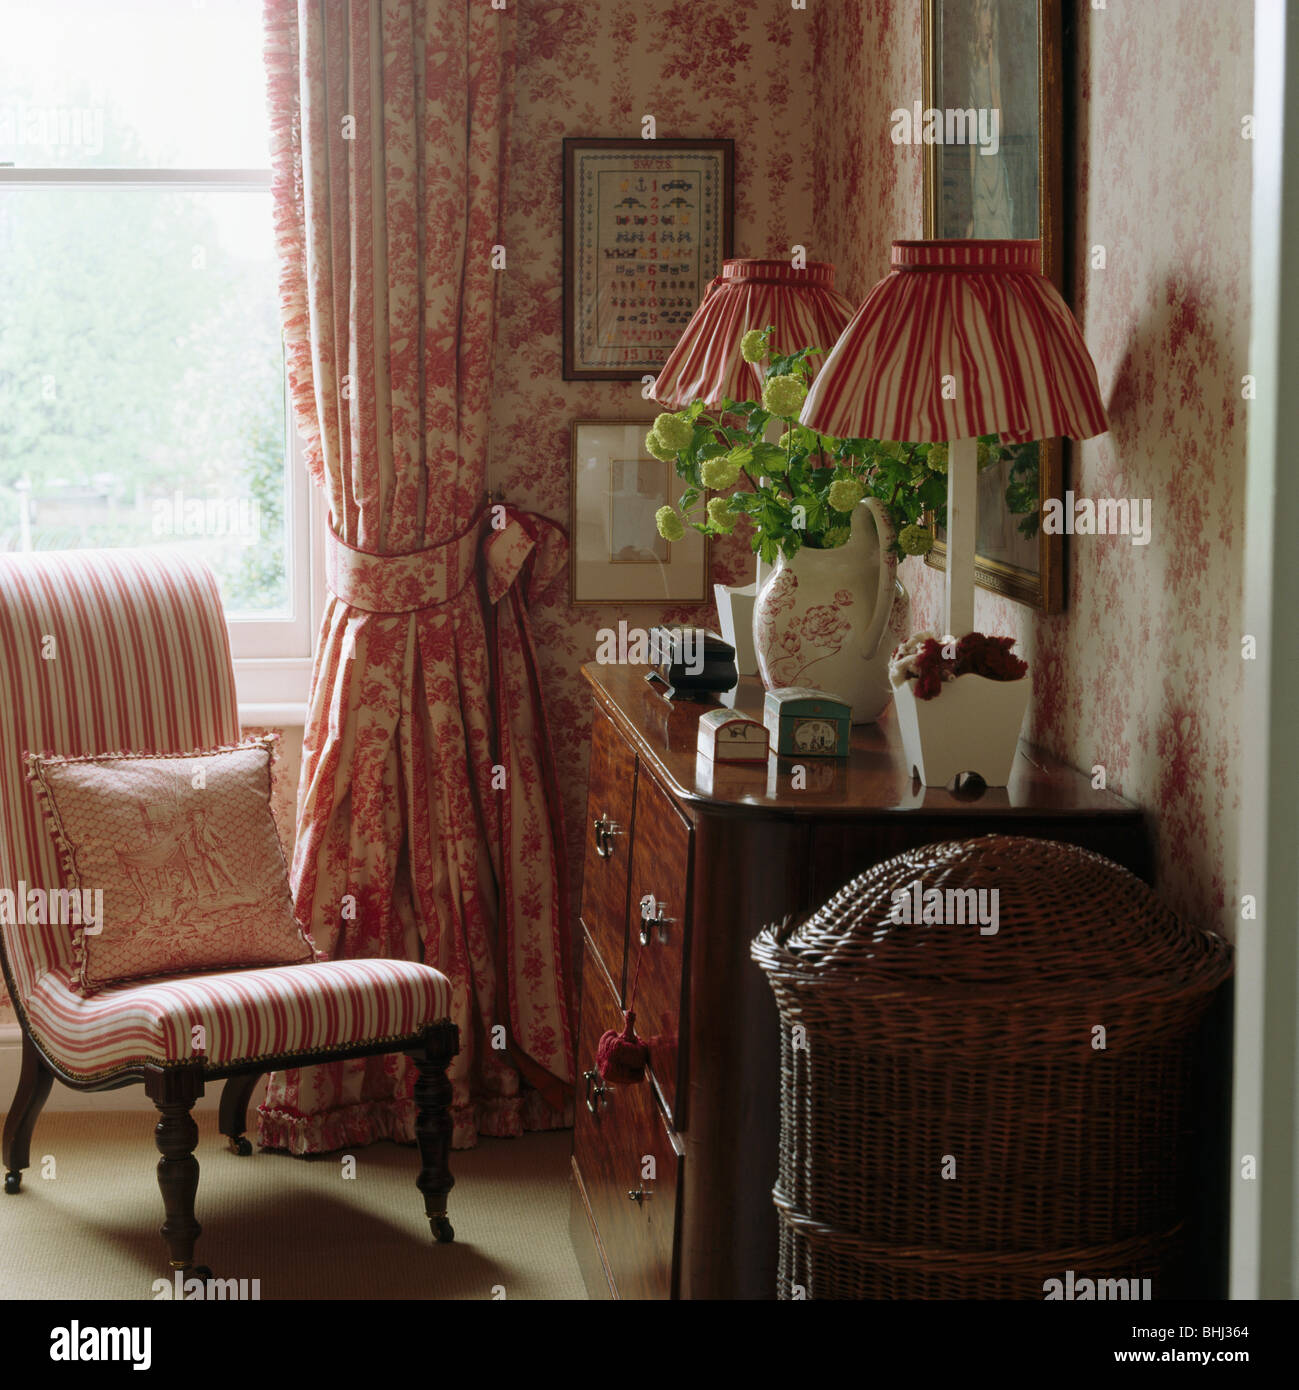 Pink Striped Upholstered Chair In Front Of Window With Pink Floral Curtain  In Corner Of Bedroom With Antique Chest Of Drawers